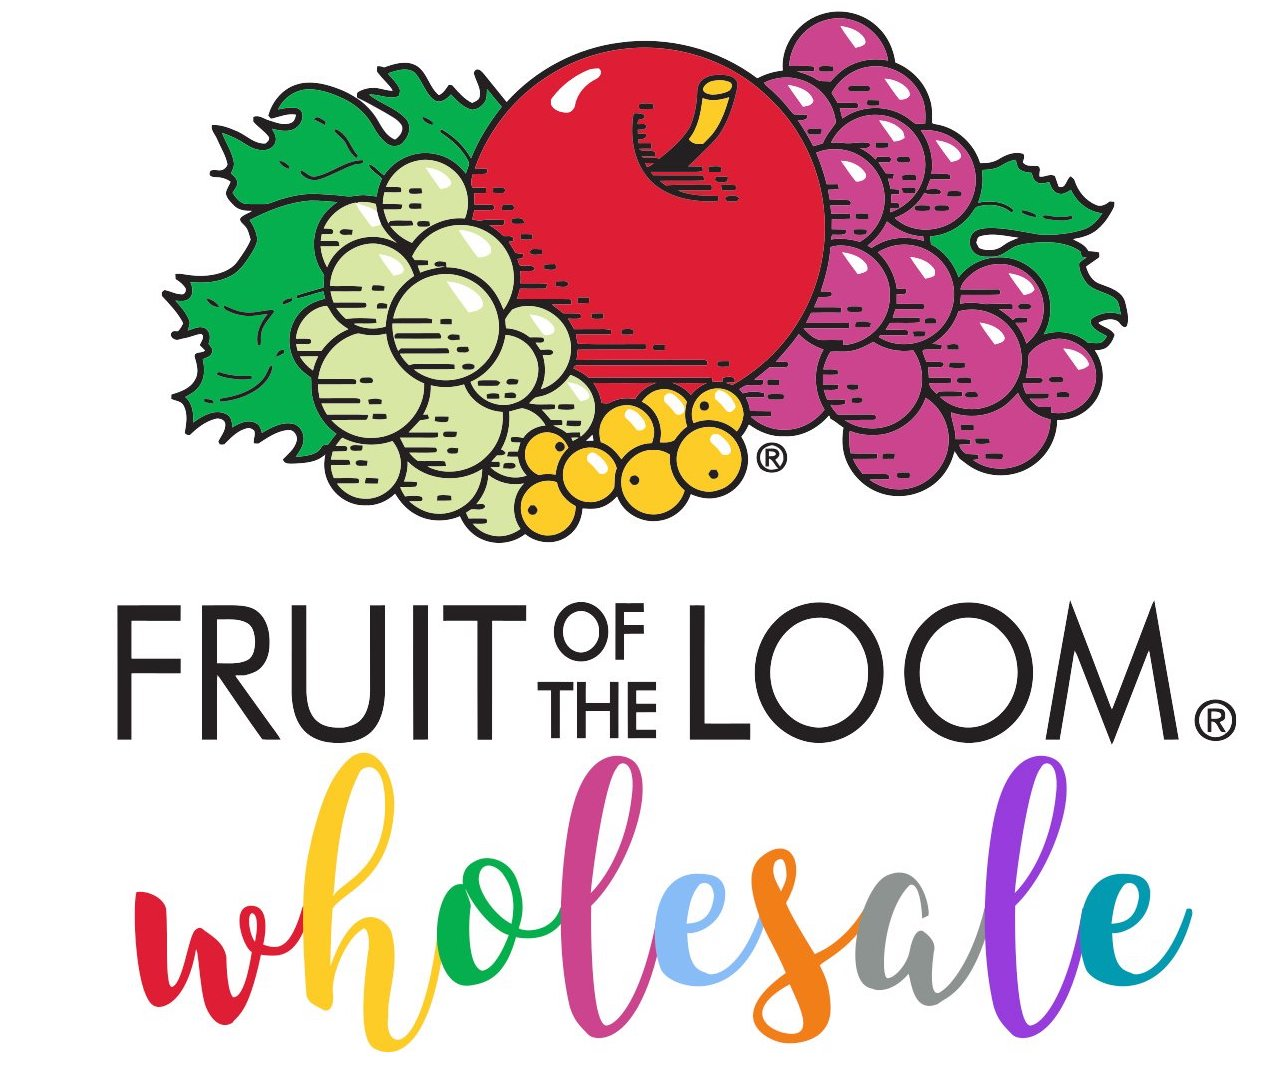 Fruit of the Loom Wholesale